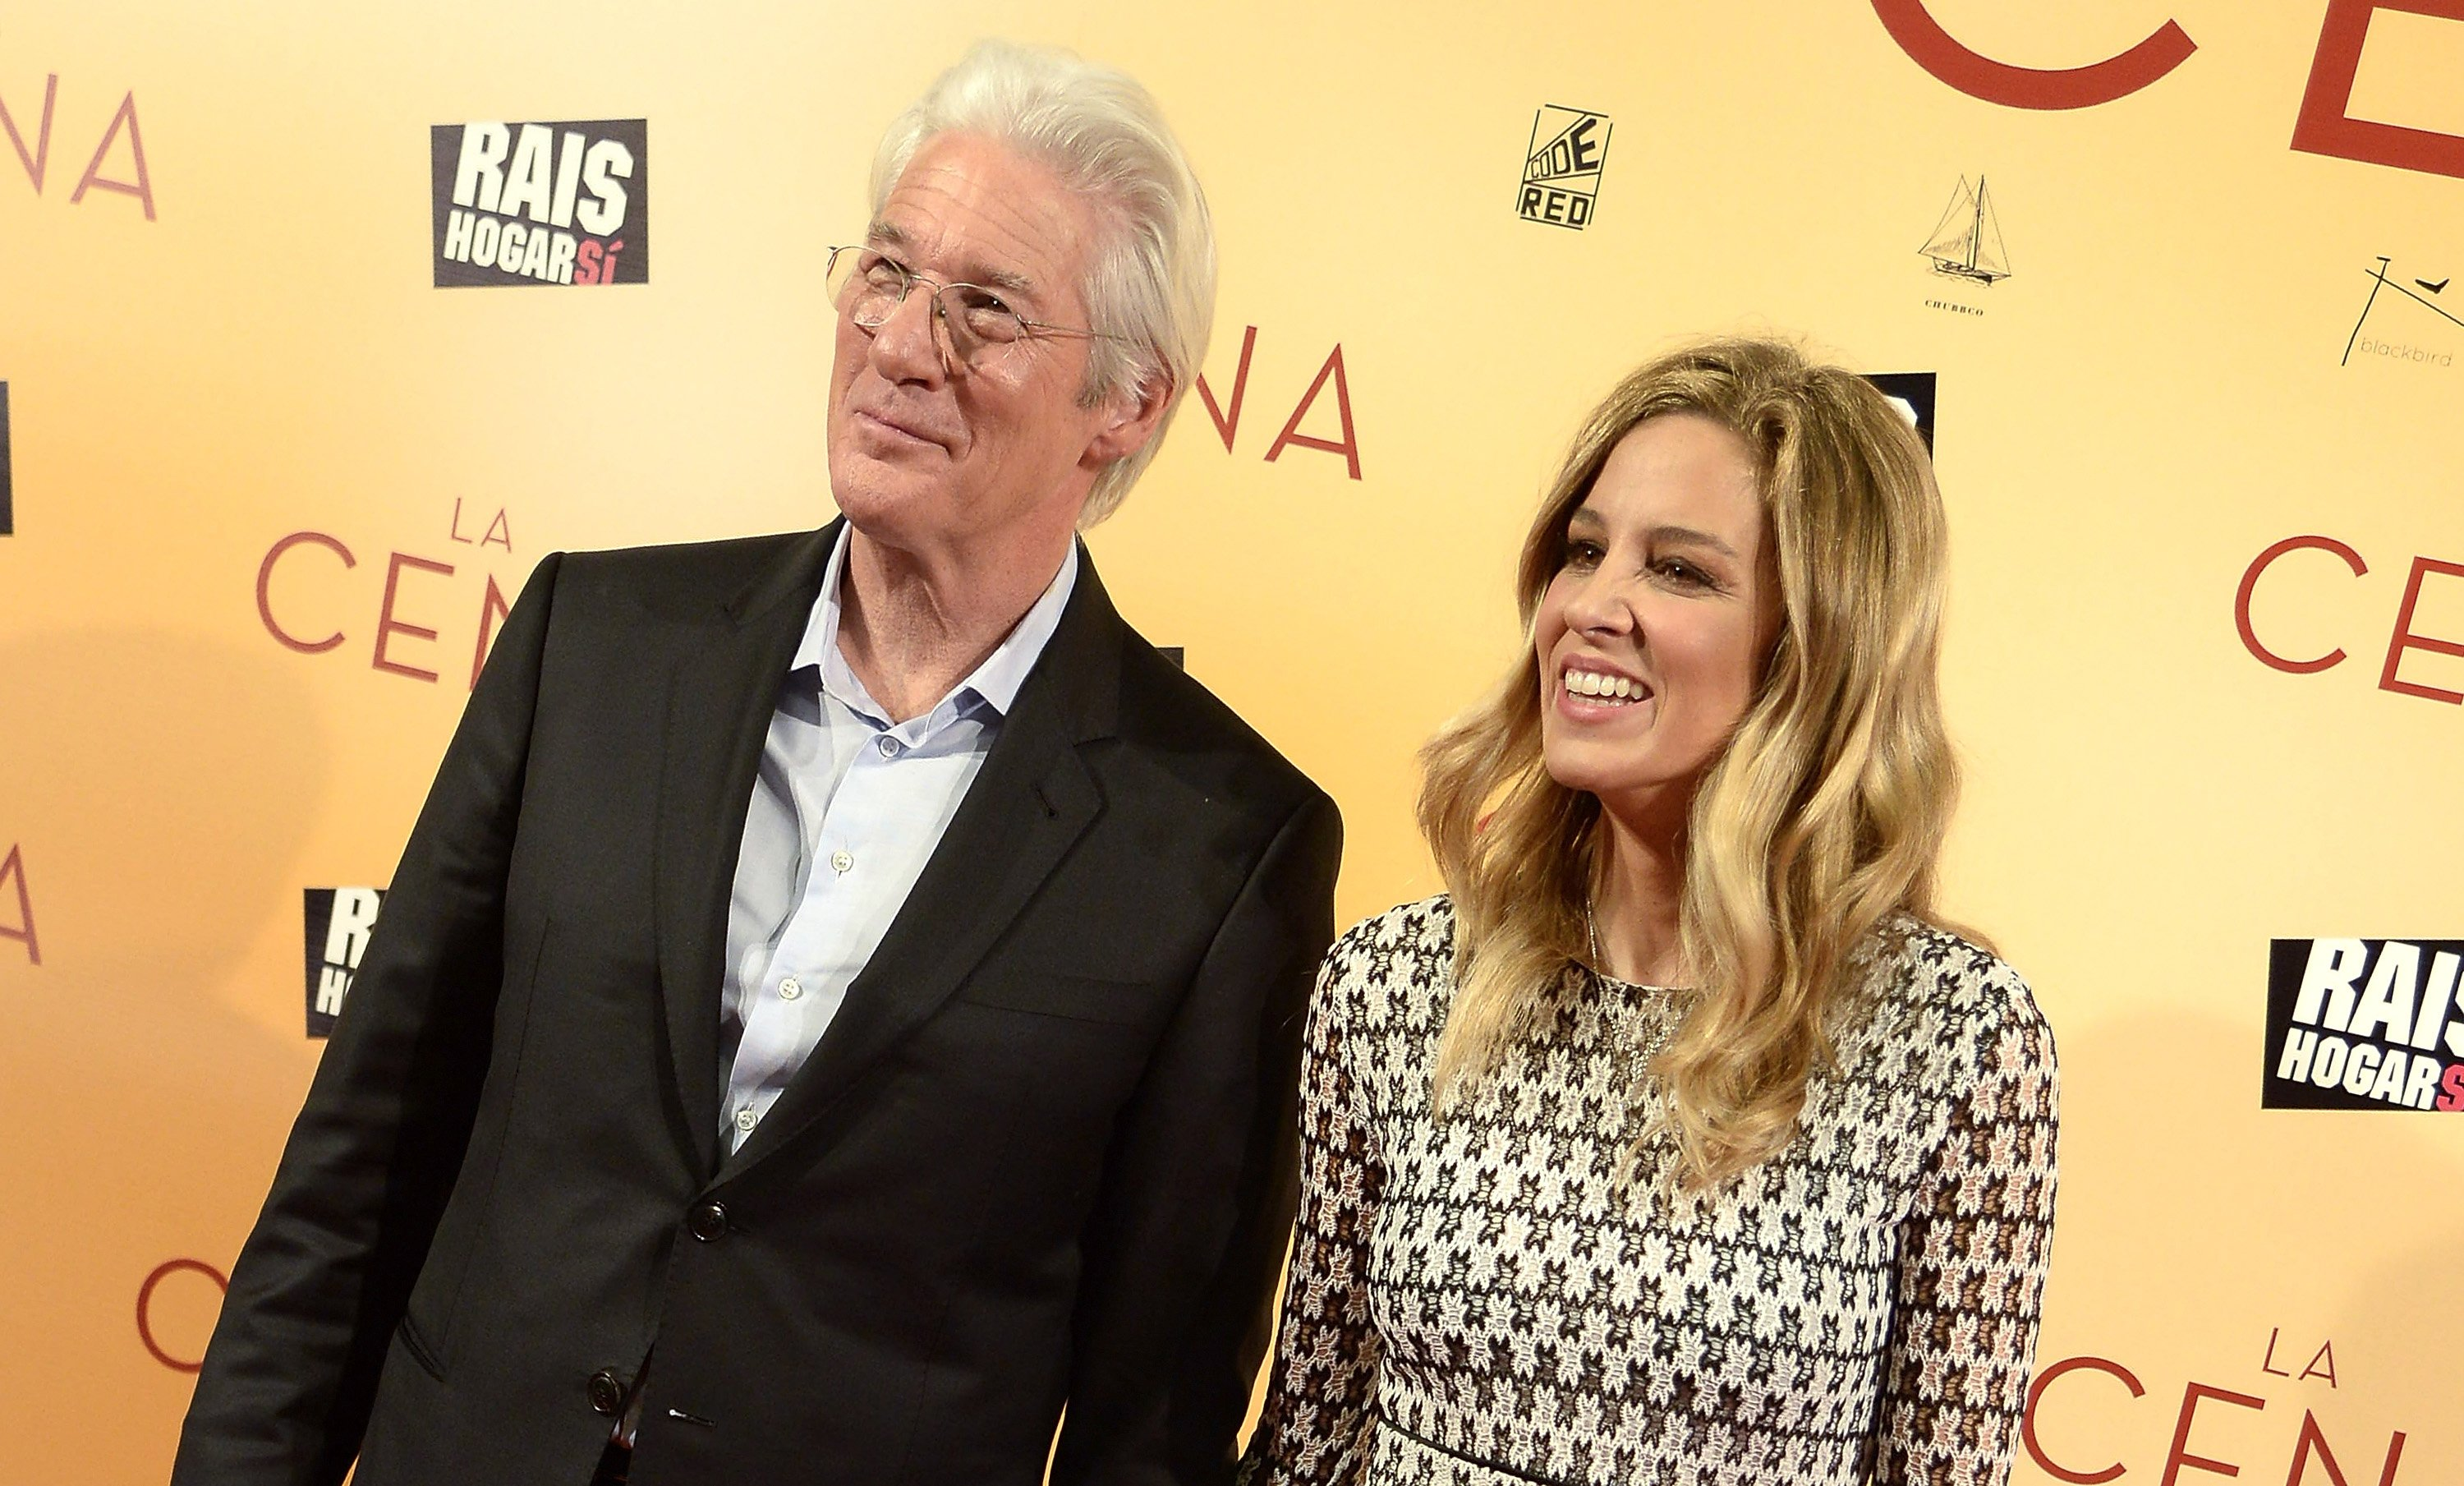 Richard Gere and Alejandra Silva attend the 'La Cena' (The Dinner) premiere at the Capitol cinema on December 11, 2017 in Madrid, Spain | Photo: GettyImages